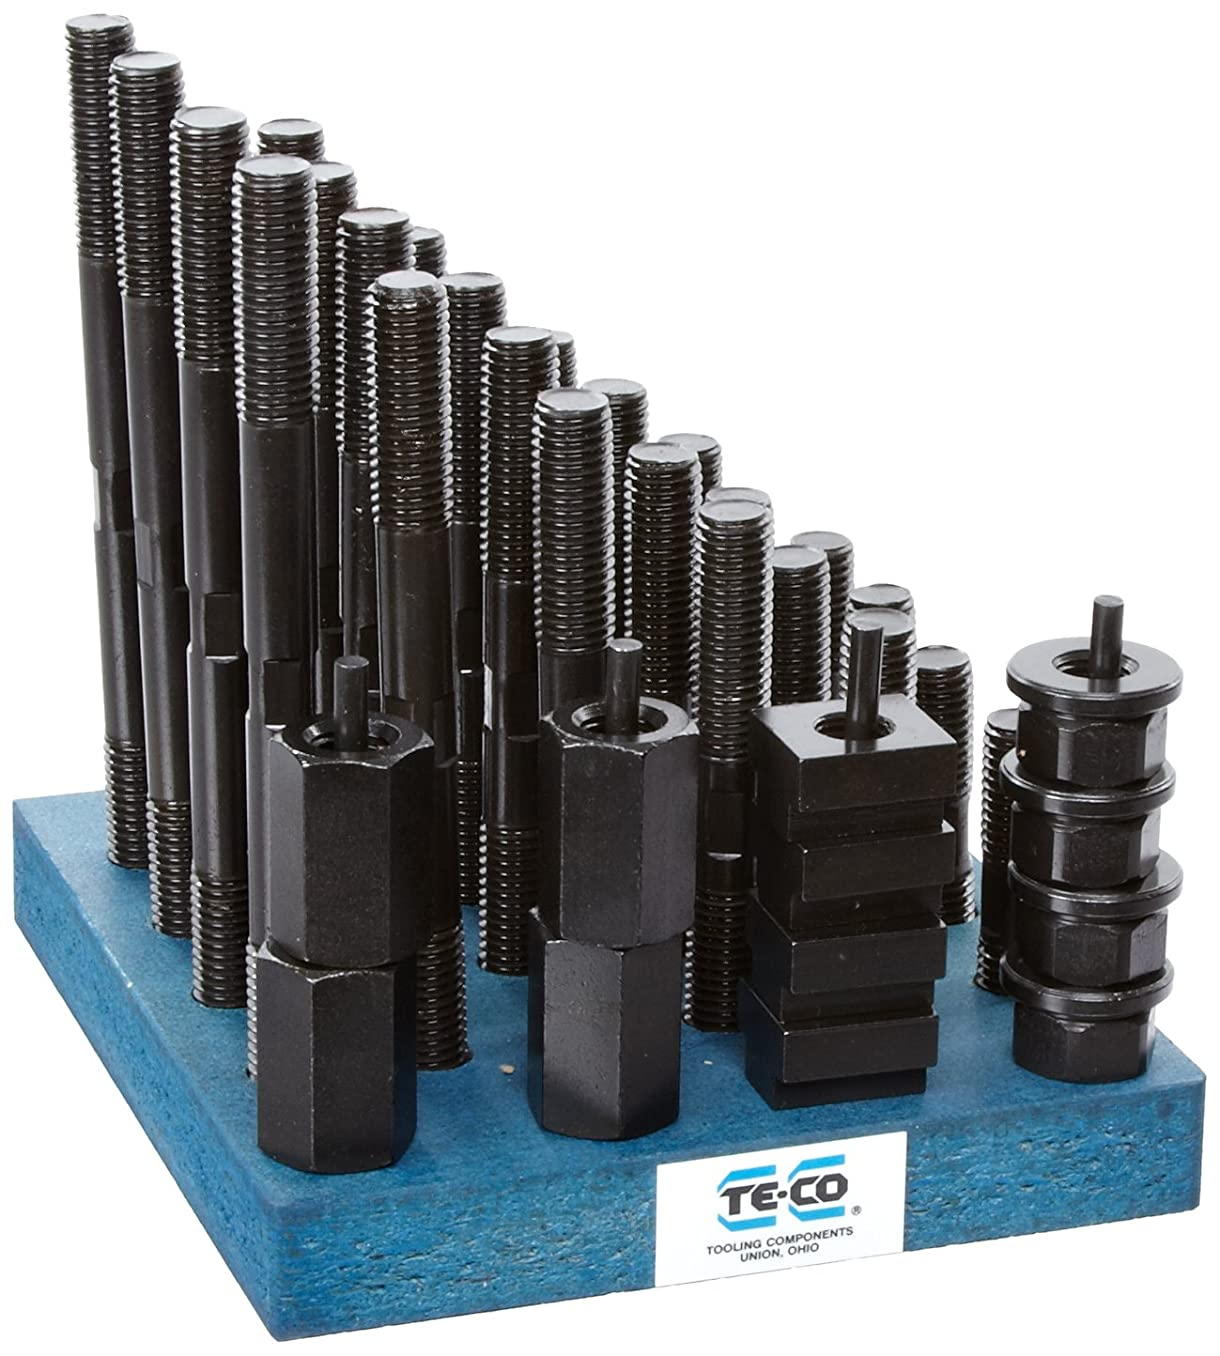 Te-Co 20608 38 Piece T-Nut and Stud Kit, 5/8